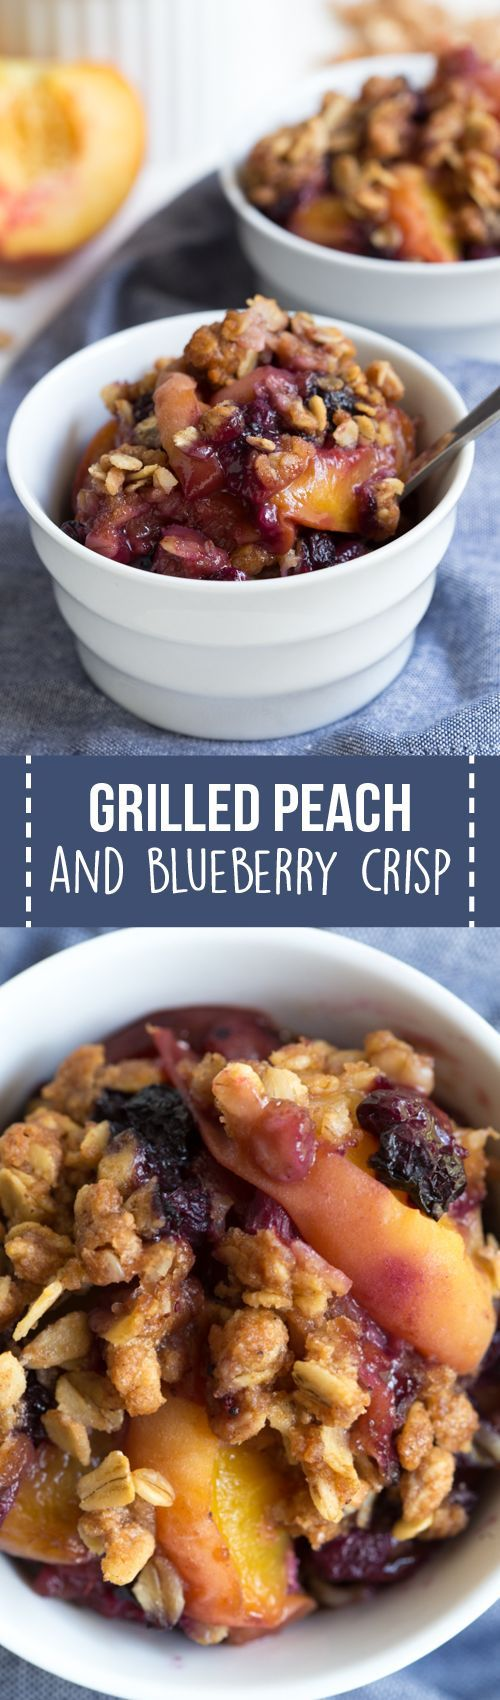 Grilled Peach and Blueberry Crisp is made with only a few simple ingredients including fresh peaches, wild blueberries and crisp oat topping! The fresh crisp is cooked on the grill so you don't even have to turn on the oven. @wymansofmaine